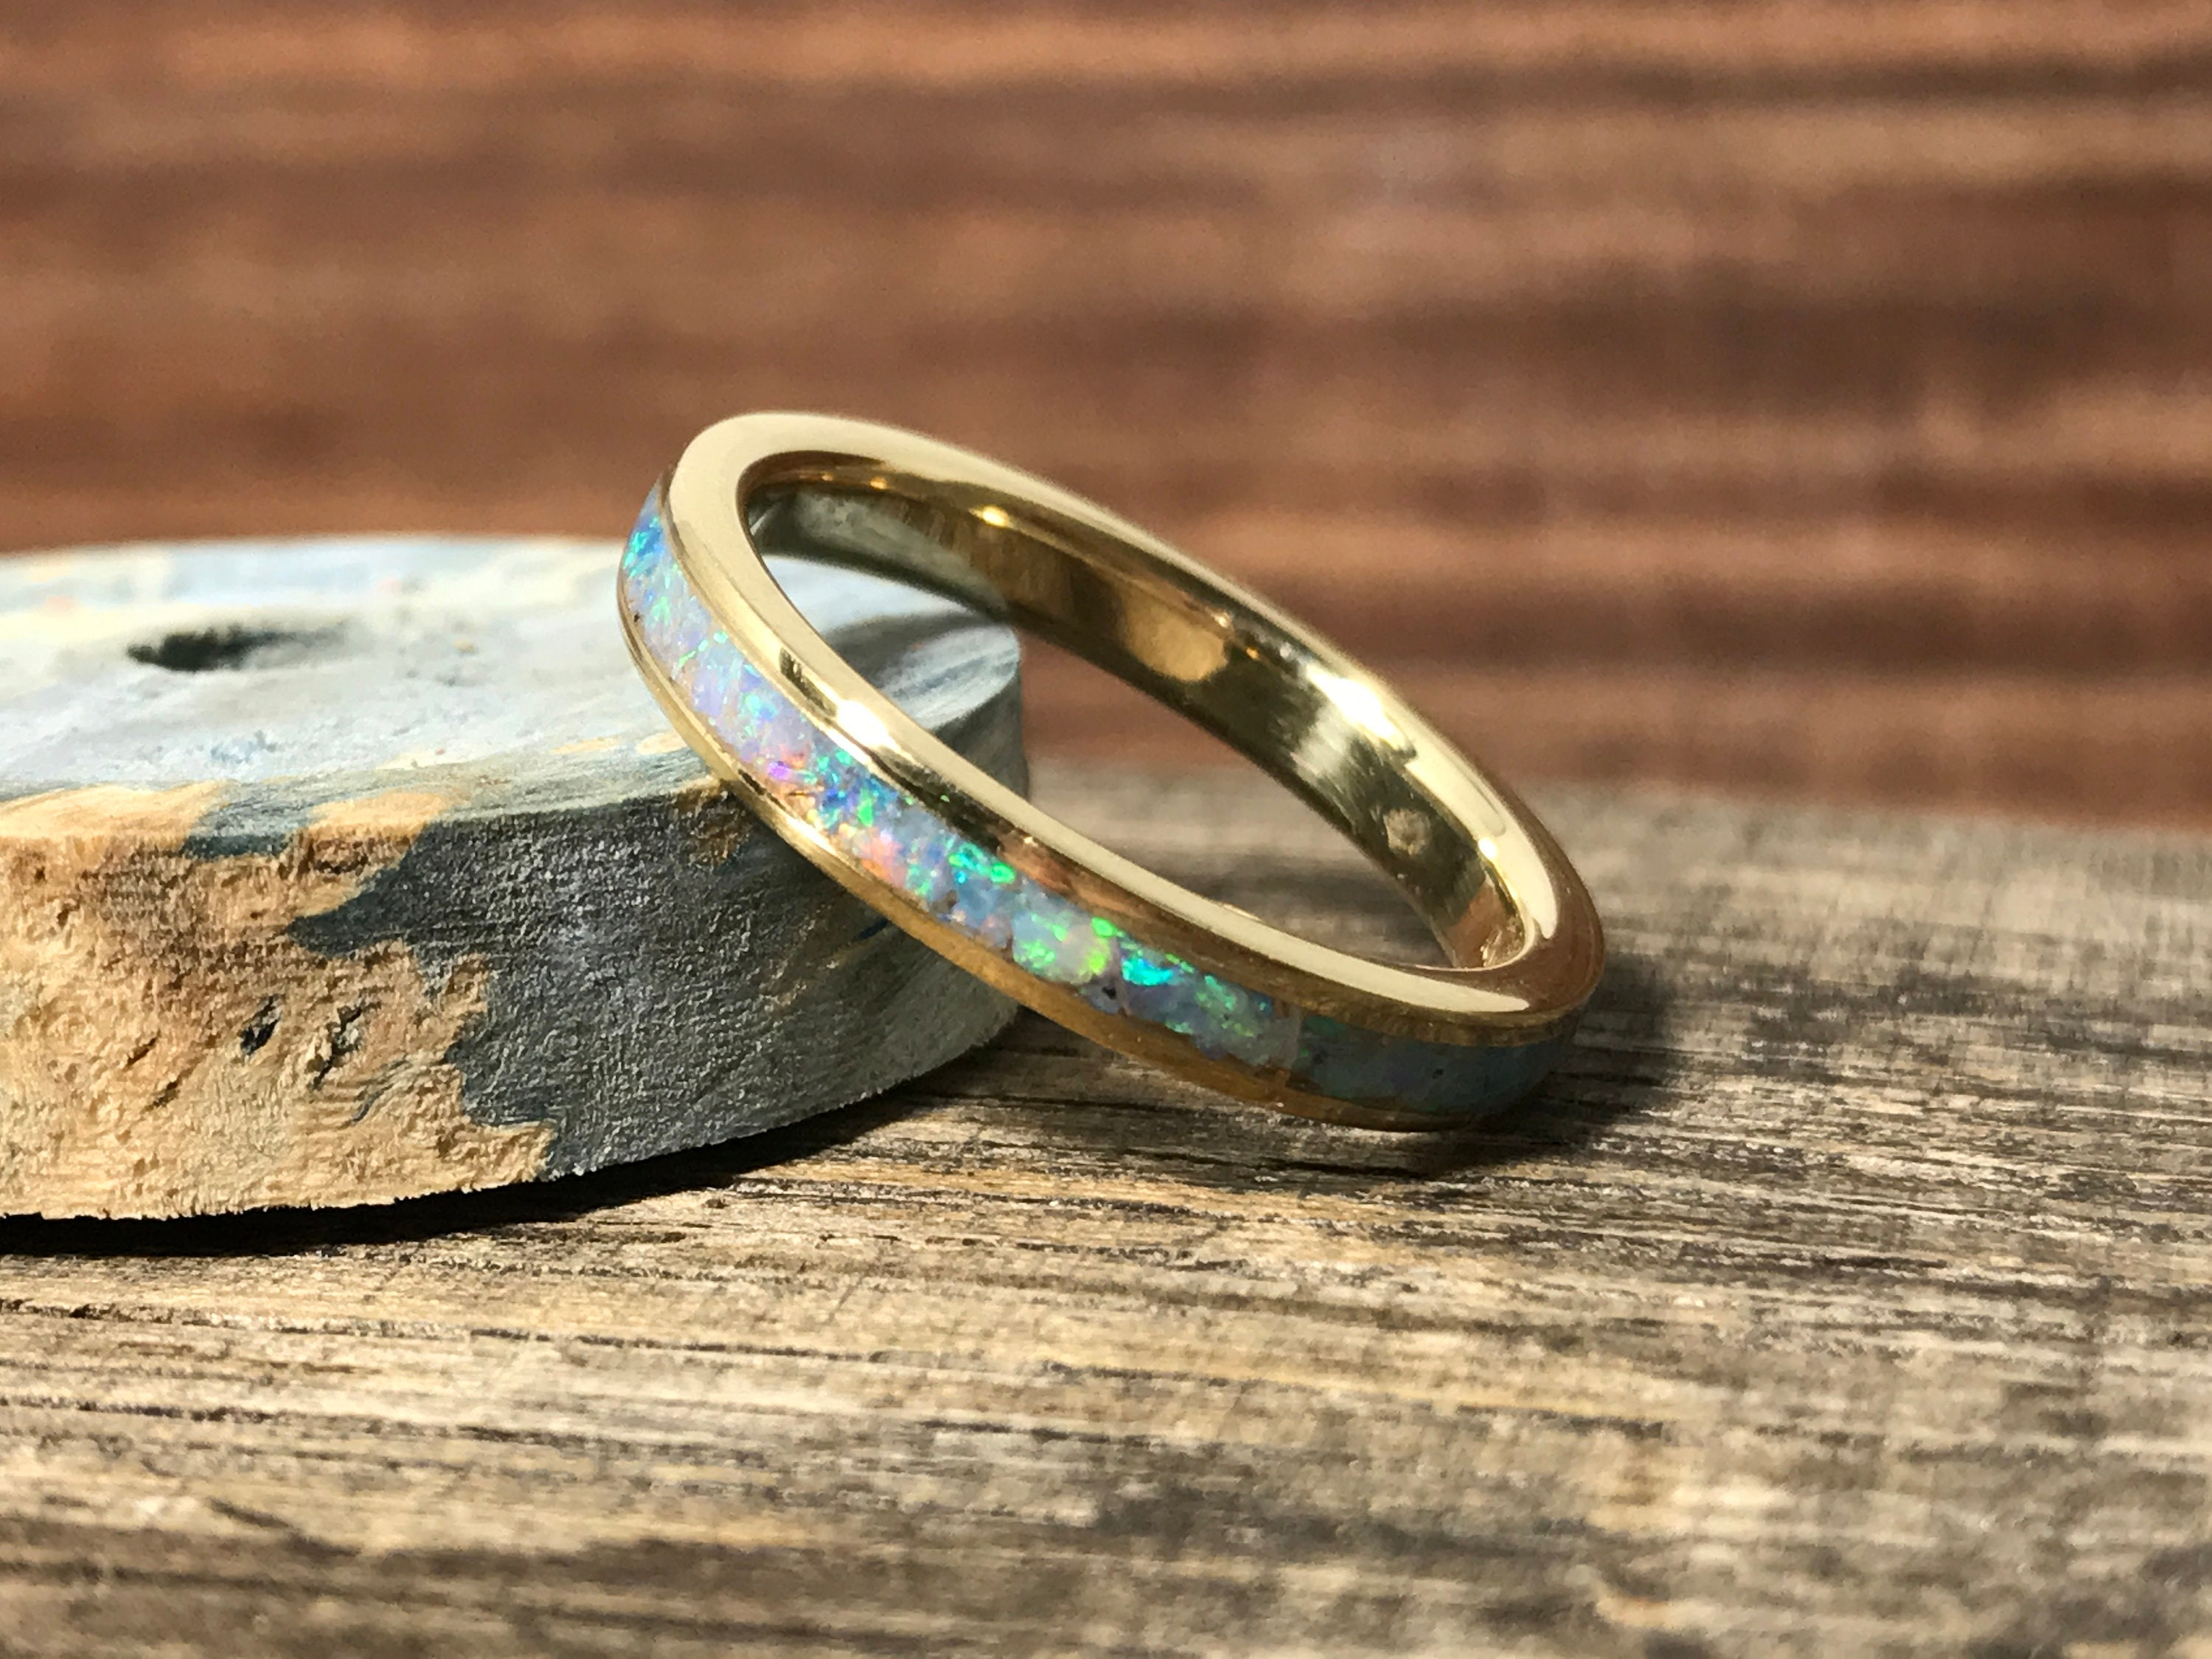 Opal Wedding Band.Yellow Gold And Opal Wedding Band Opal Engagement Ring Ladies Wedding Ring Gold Wedding Band For Her Gold Wedding Ring Robandlean